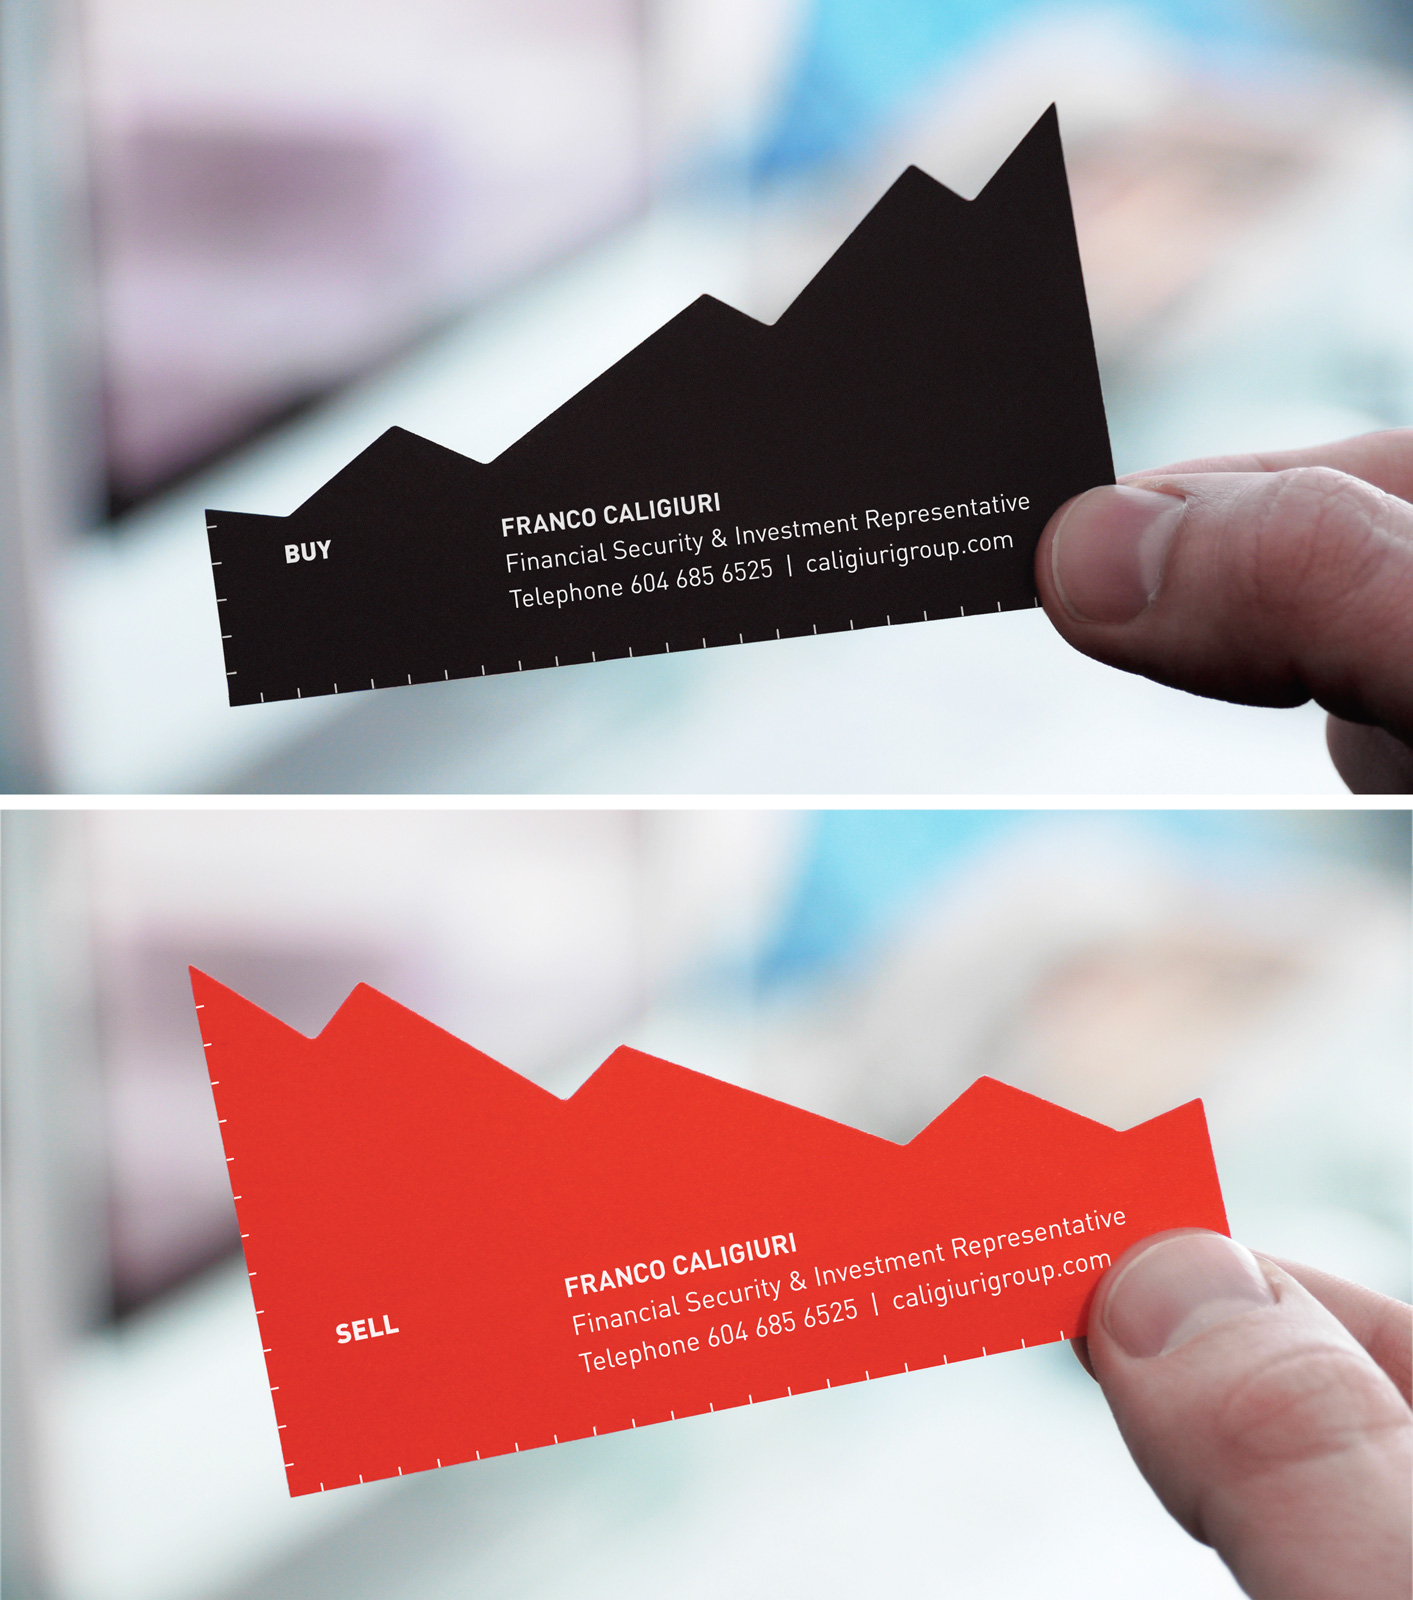 Franco Caligiuri Direct Advert By Rethink: Chart business card | Ads ...